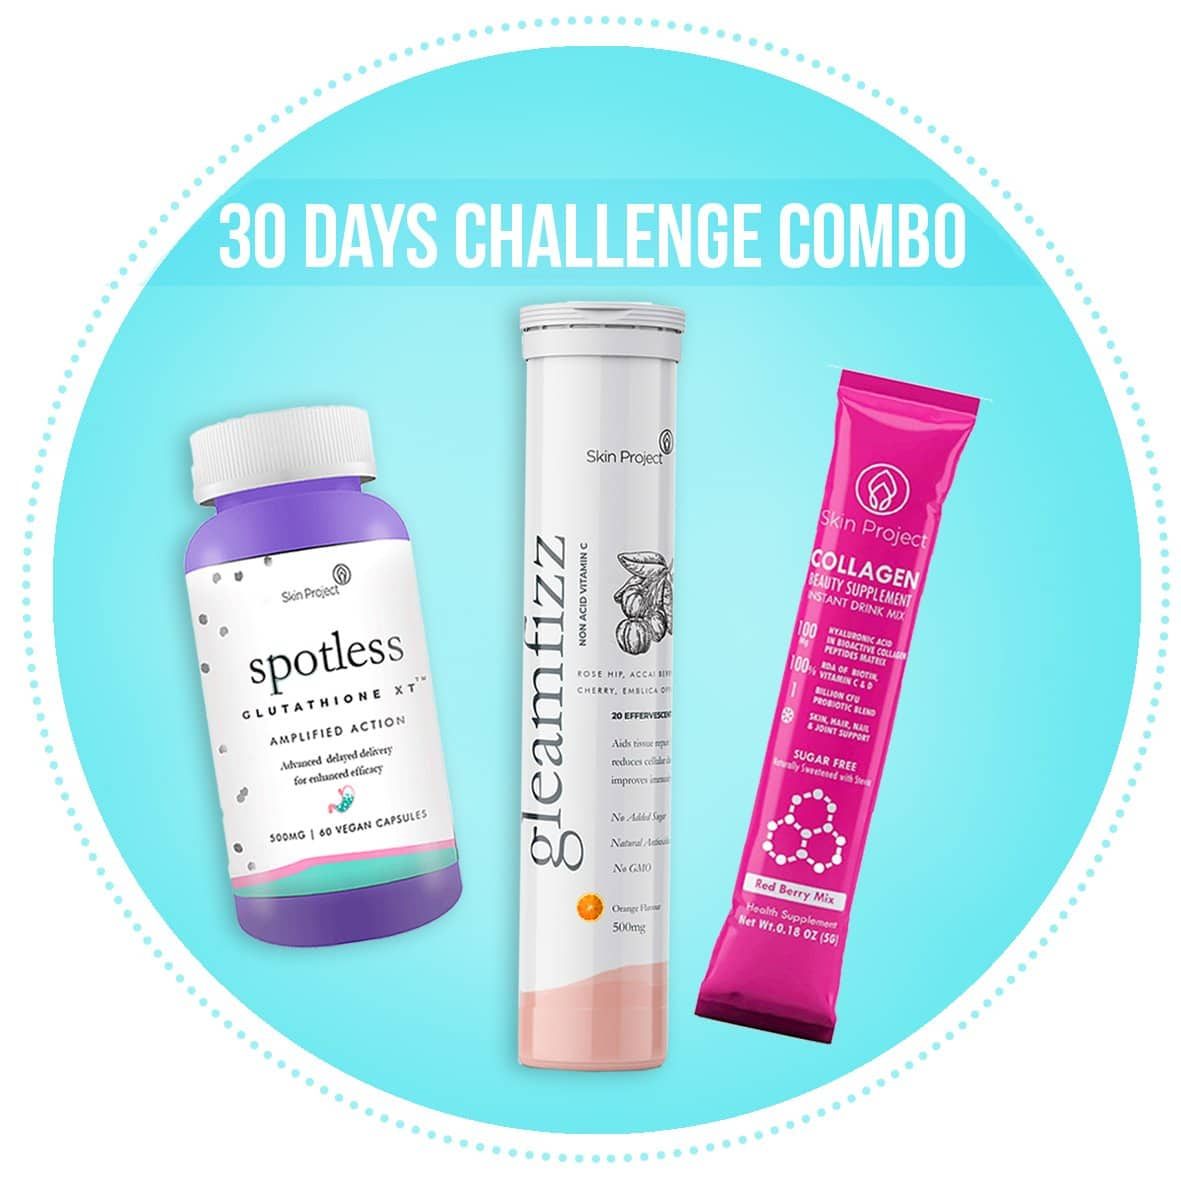 30 days Challenge Combo pack - Skin Project®